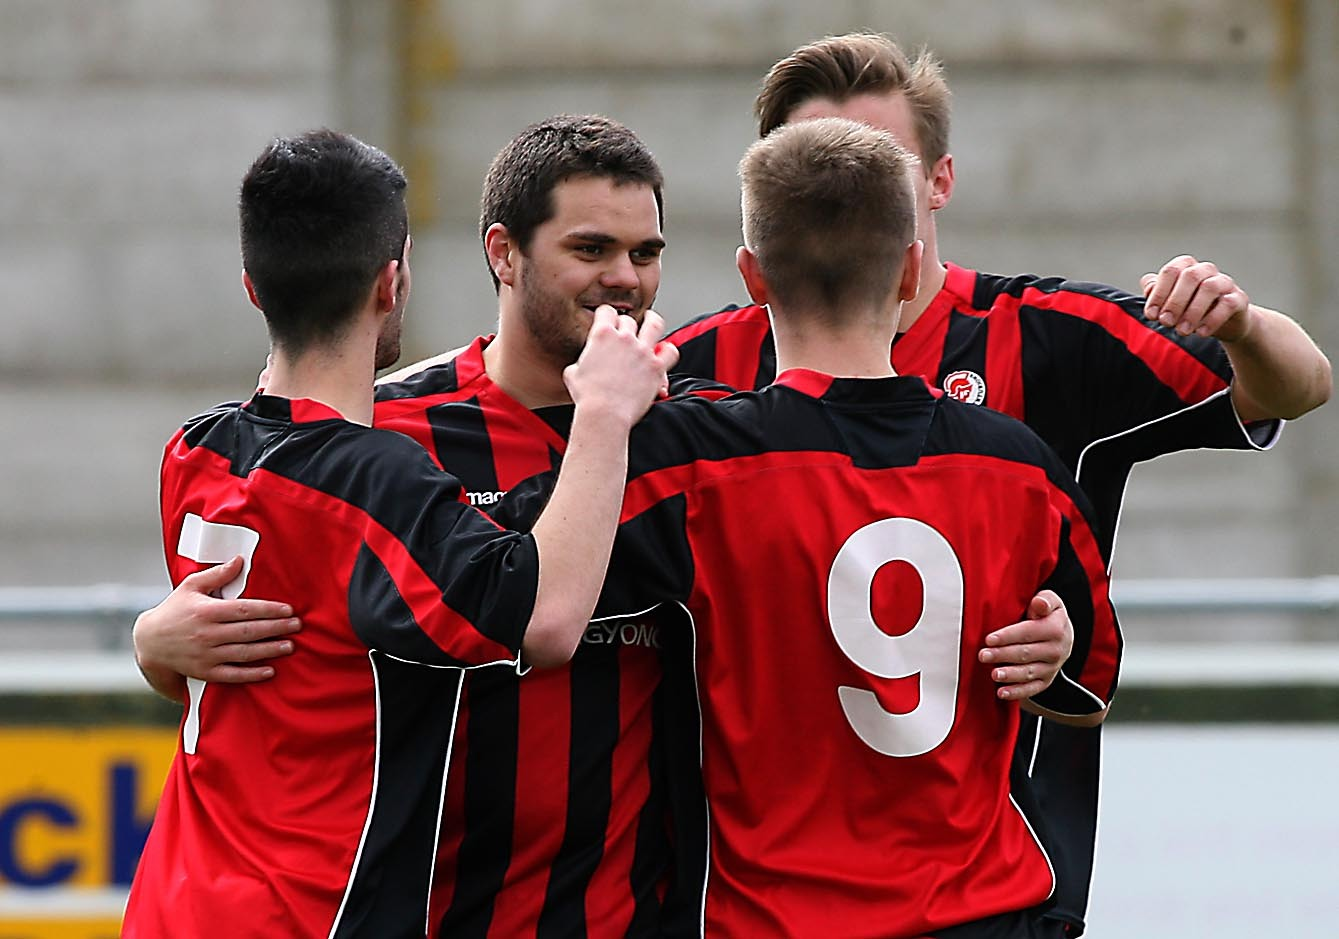 FOOTBALL: Ciren Town Dev side back from brink to win title